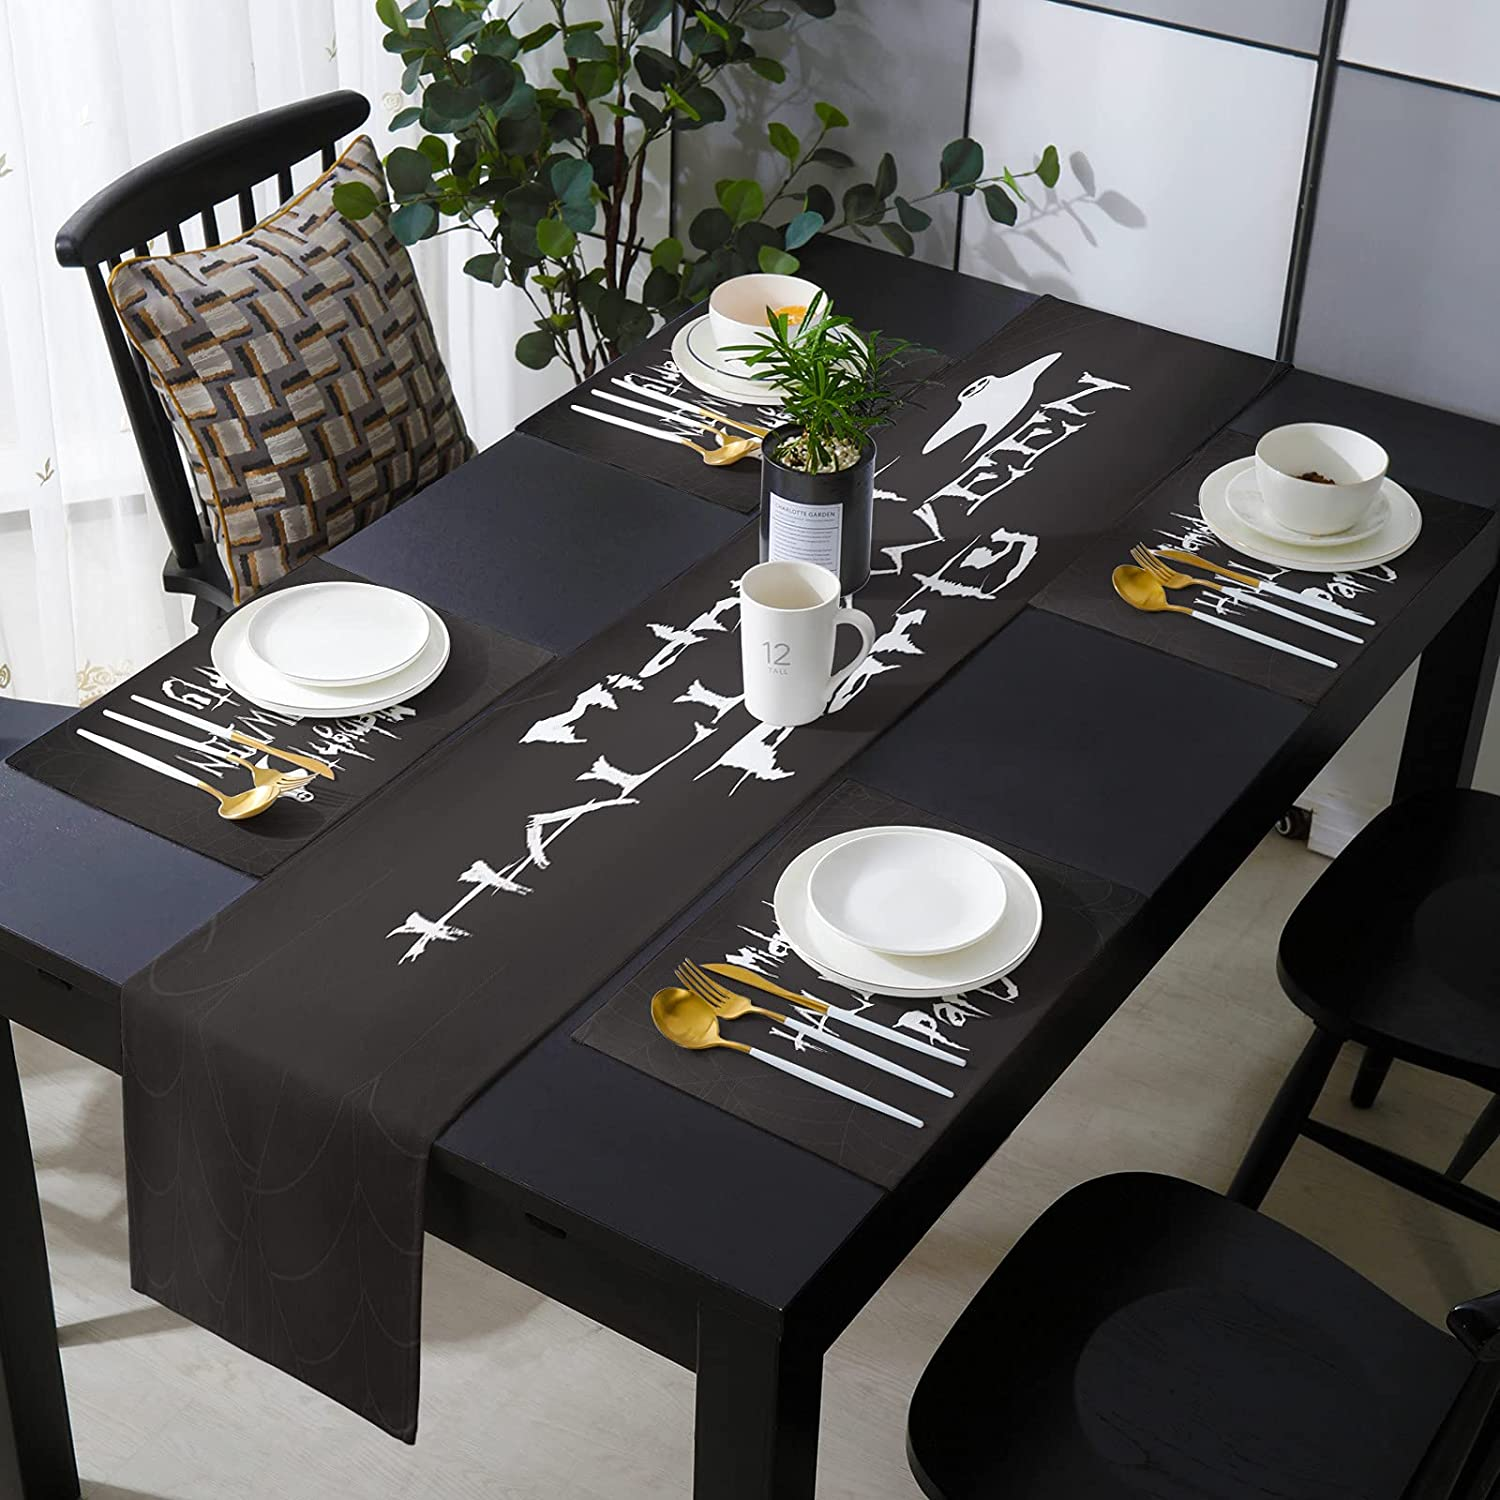 SIGOUYI Elegant Placemats with Matching Halloween Cash special price Runner Table Indefinitely